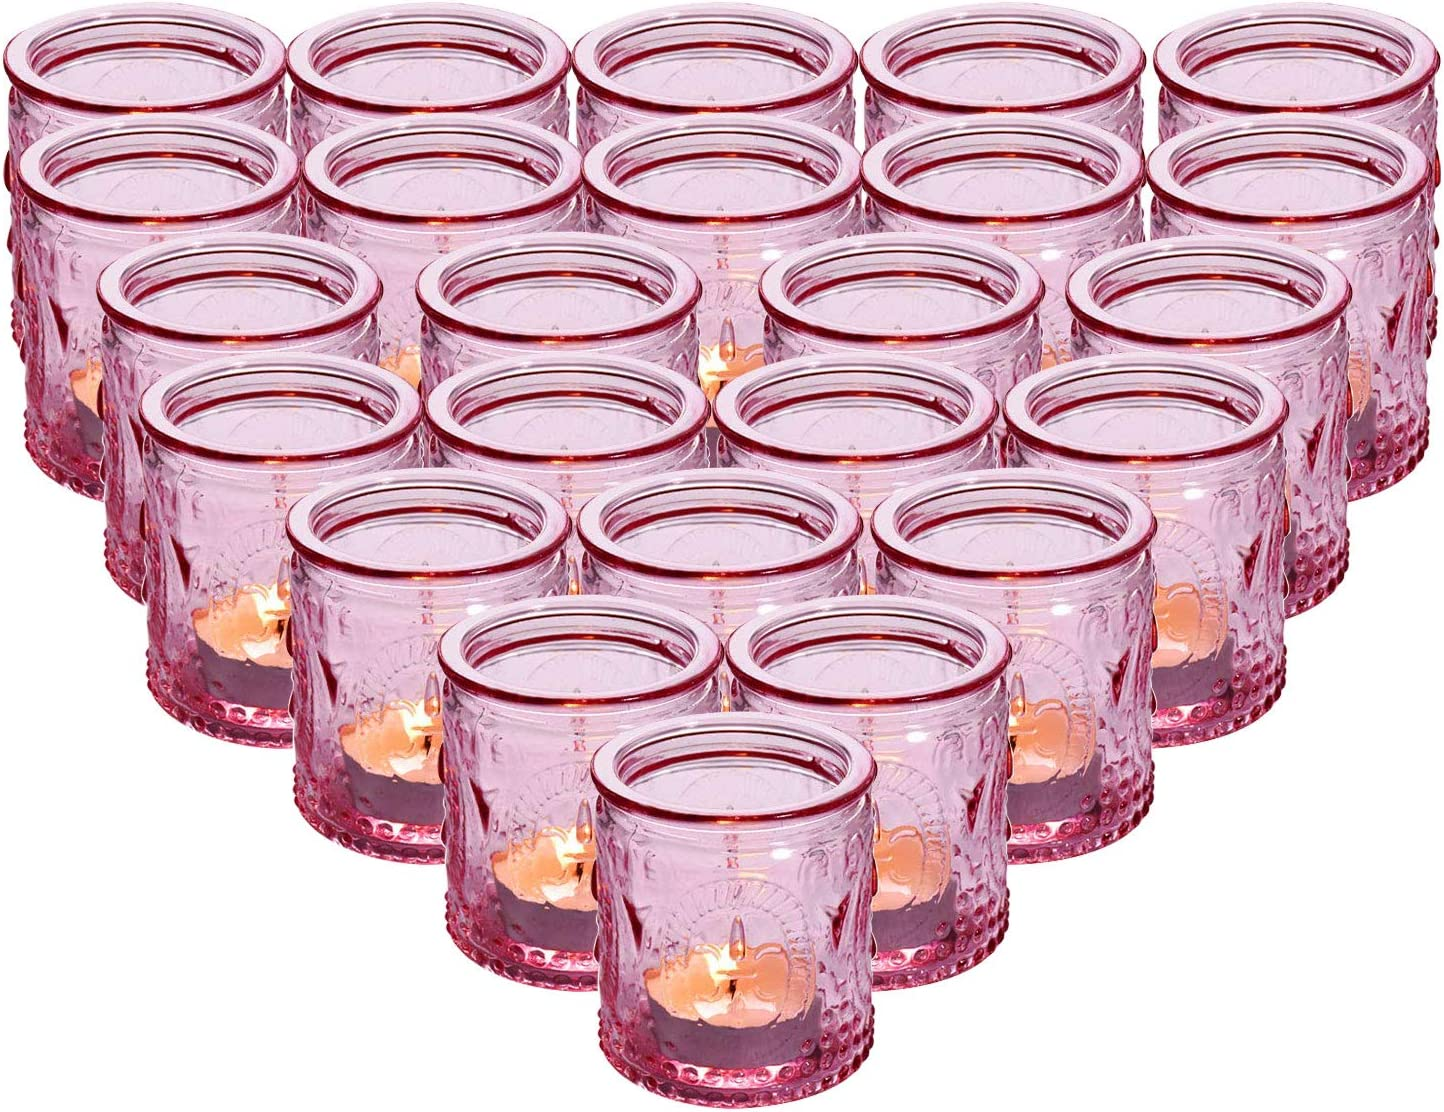 "MICROSUN 24-Pack Glass Vintage Candle Holders Votive Candle Wax Cups Tealight Holders - Perfect for Table Centerpieces, Wedding Prom,Party, Home Decor, 2.28""D x 2.75""H(Pink)"